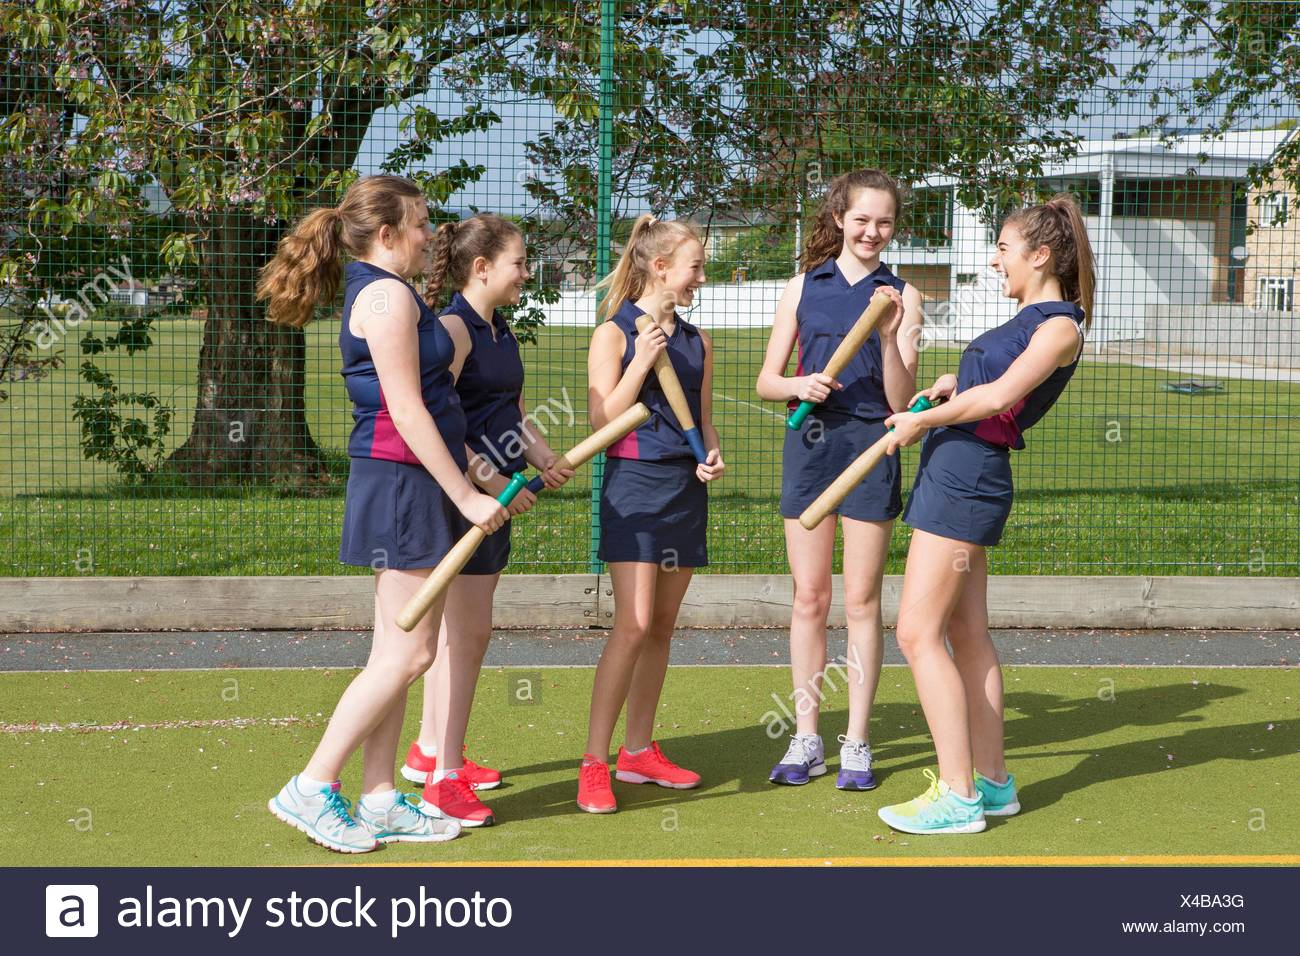 Group of girls with rounders bats - Stock Image